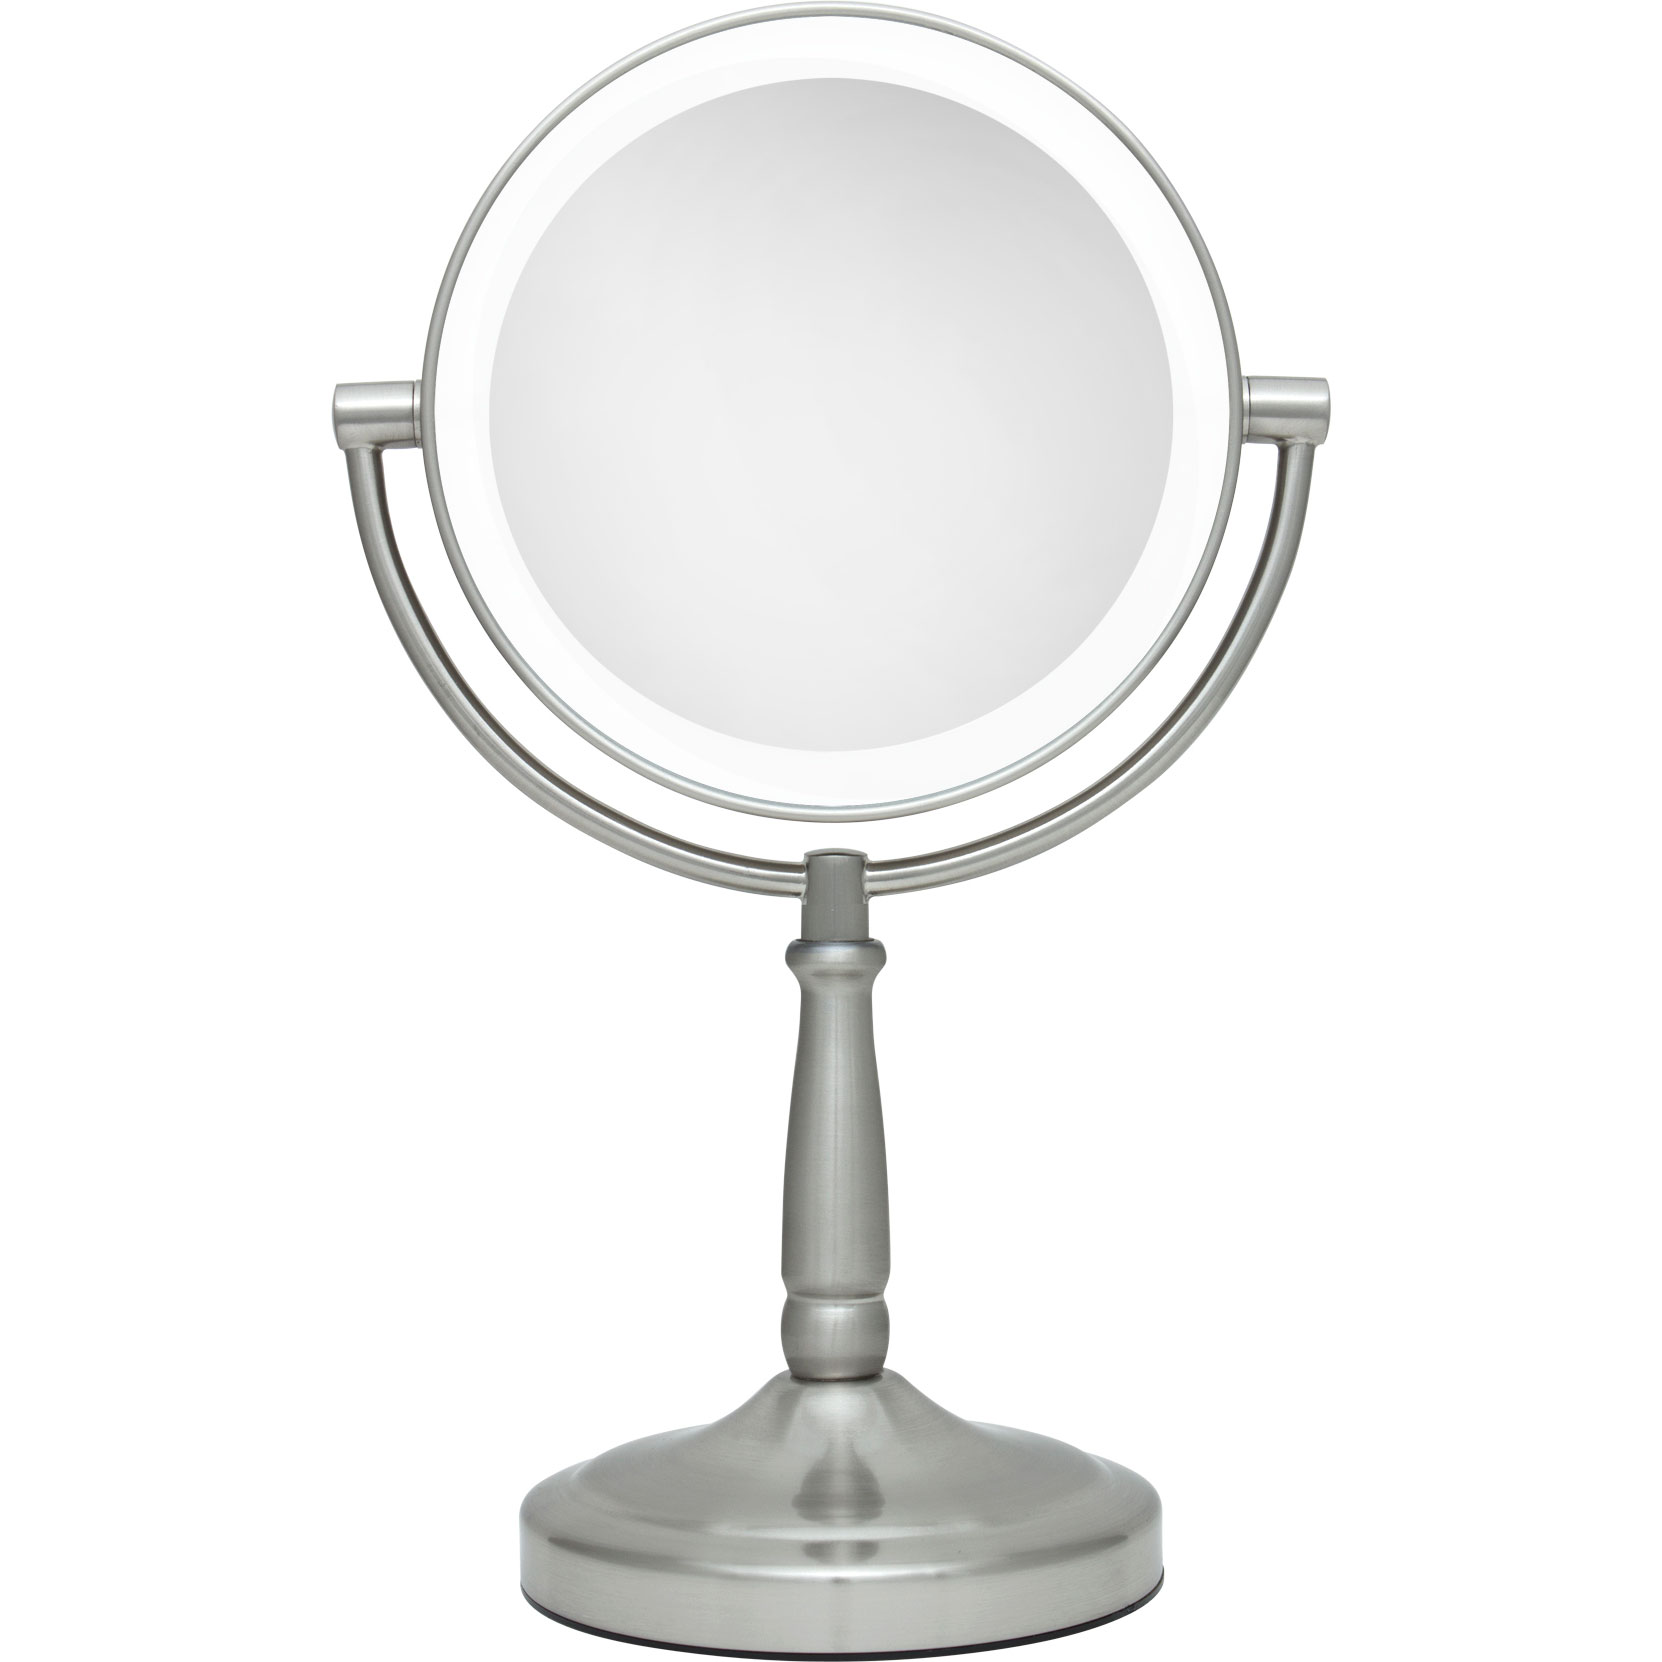 Vanity Light Makeup Mirror : 5x/1x Cordless Dual Sided LED Light Vanity Mirror by Zadro LEDV45